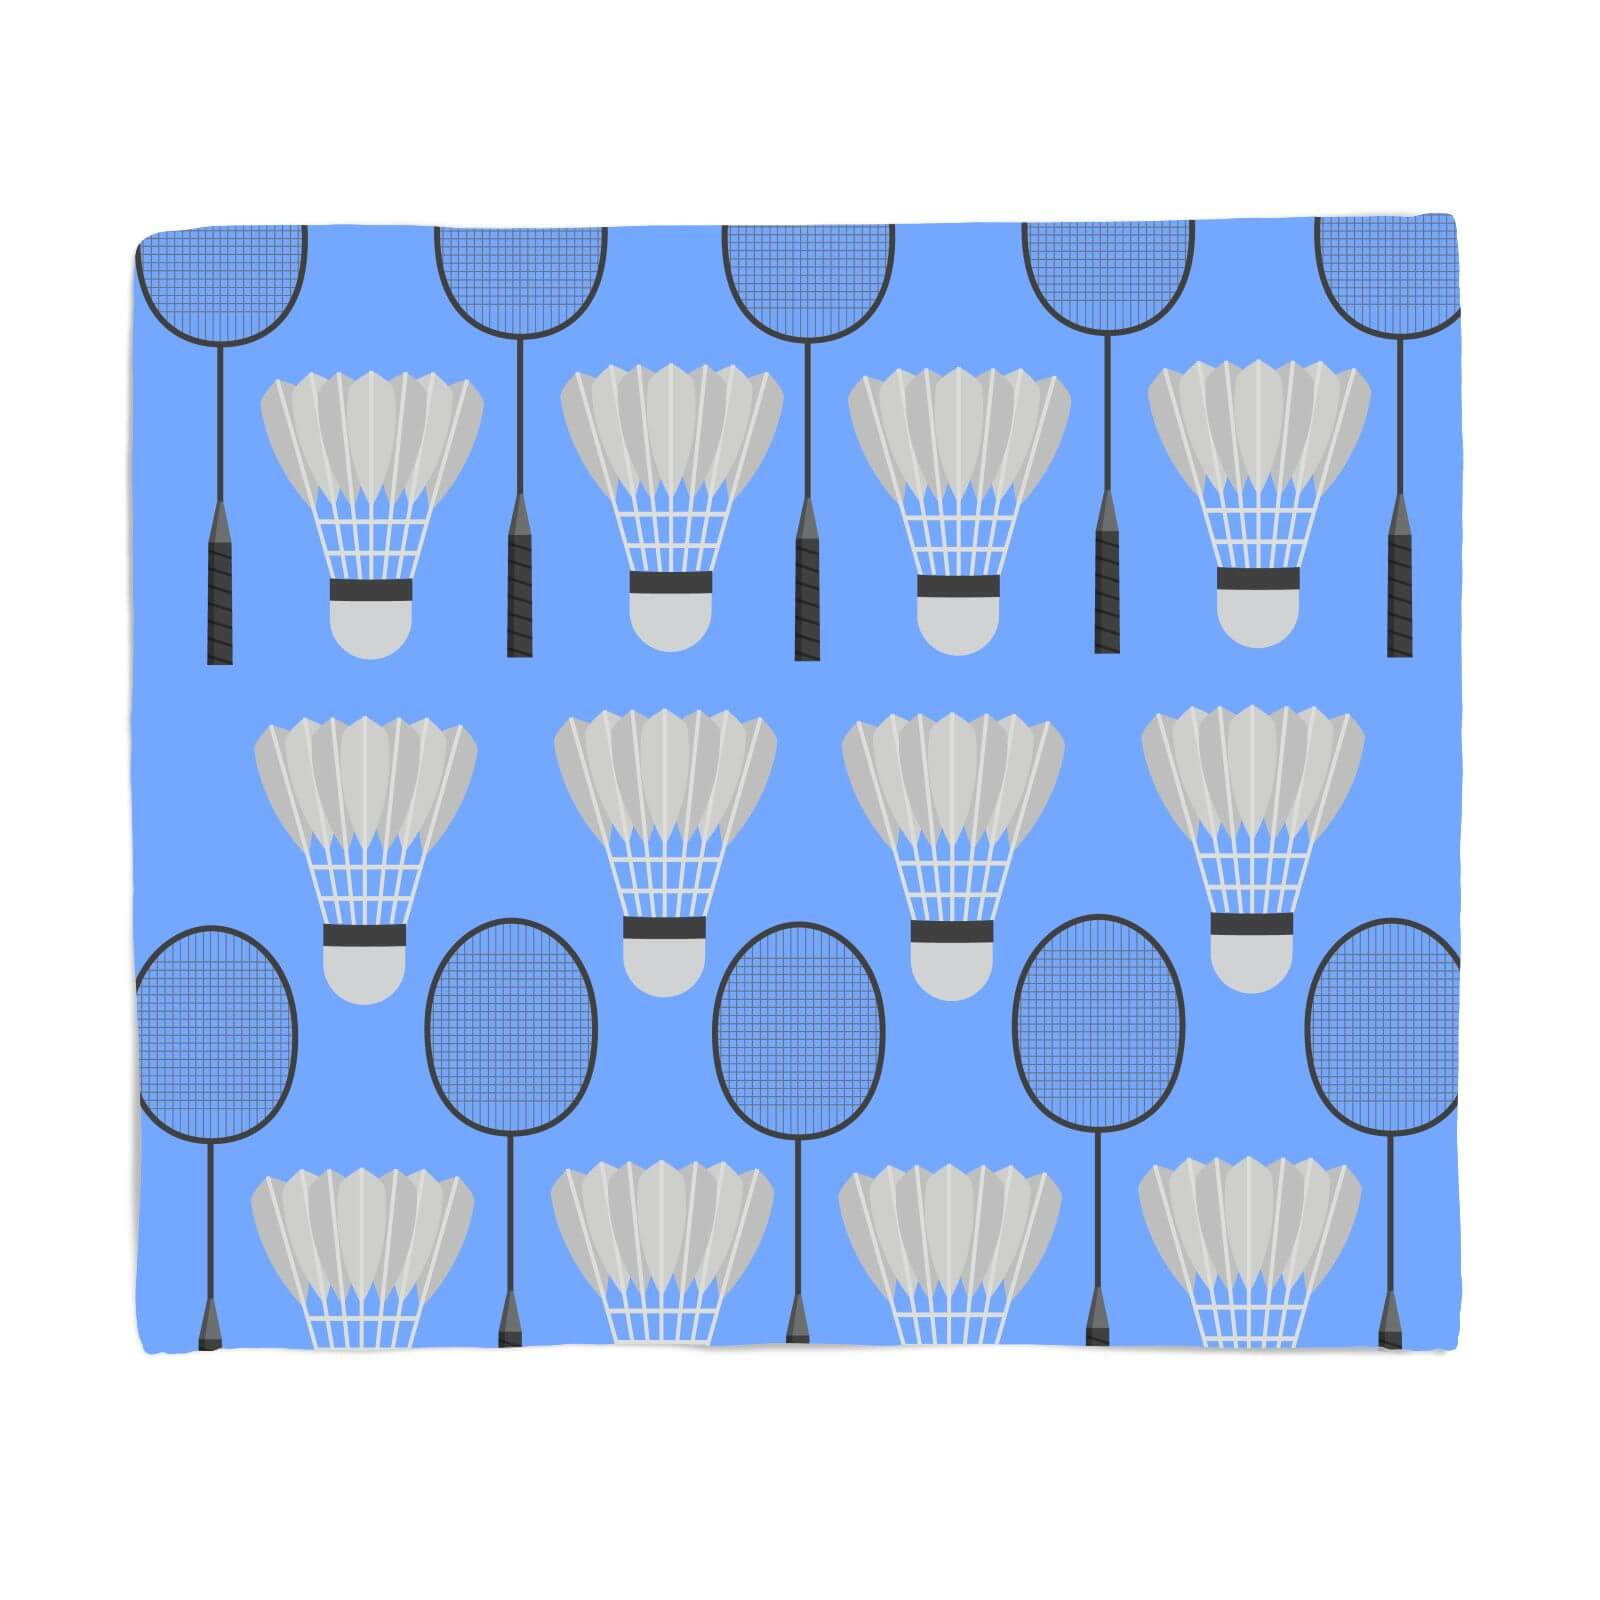 Badminton Fleece Blanket